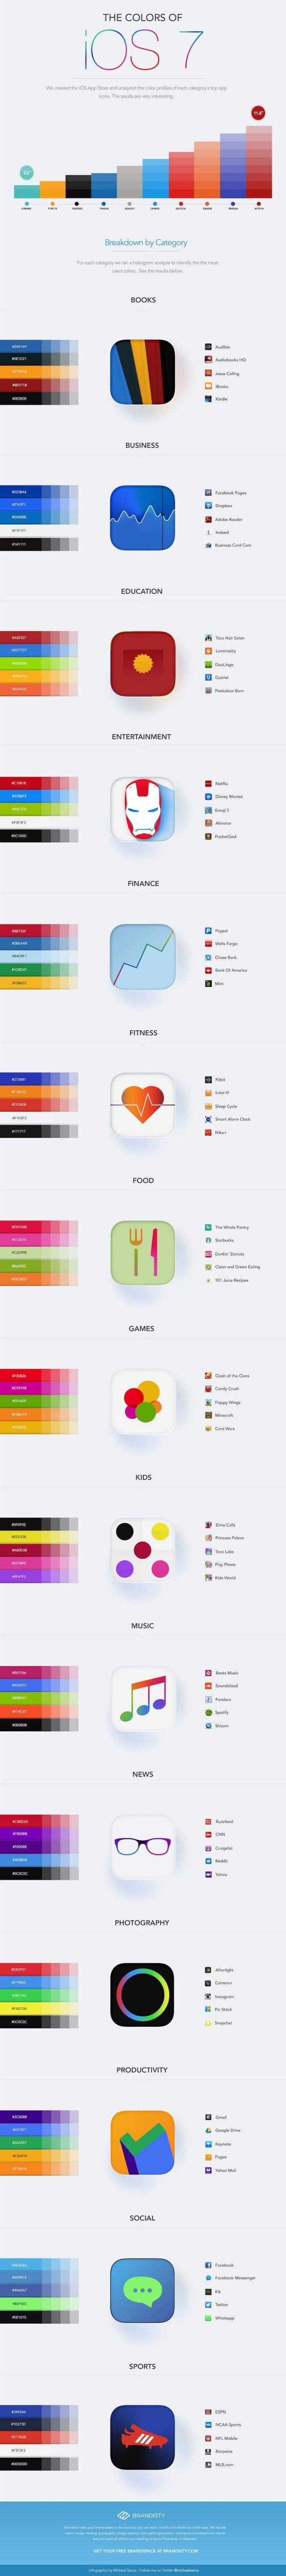 These Are The Most Popular Colors On The iOS 7 App Store #infographic